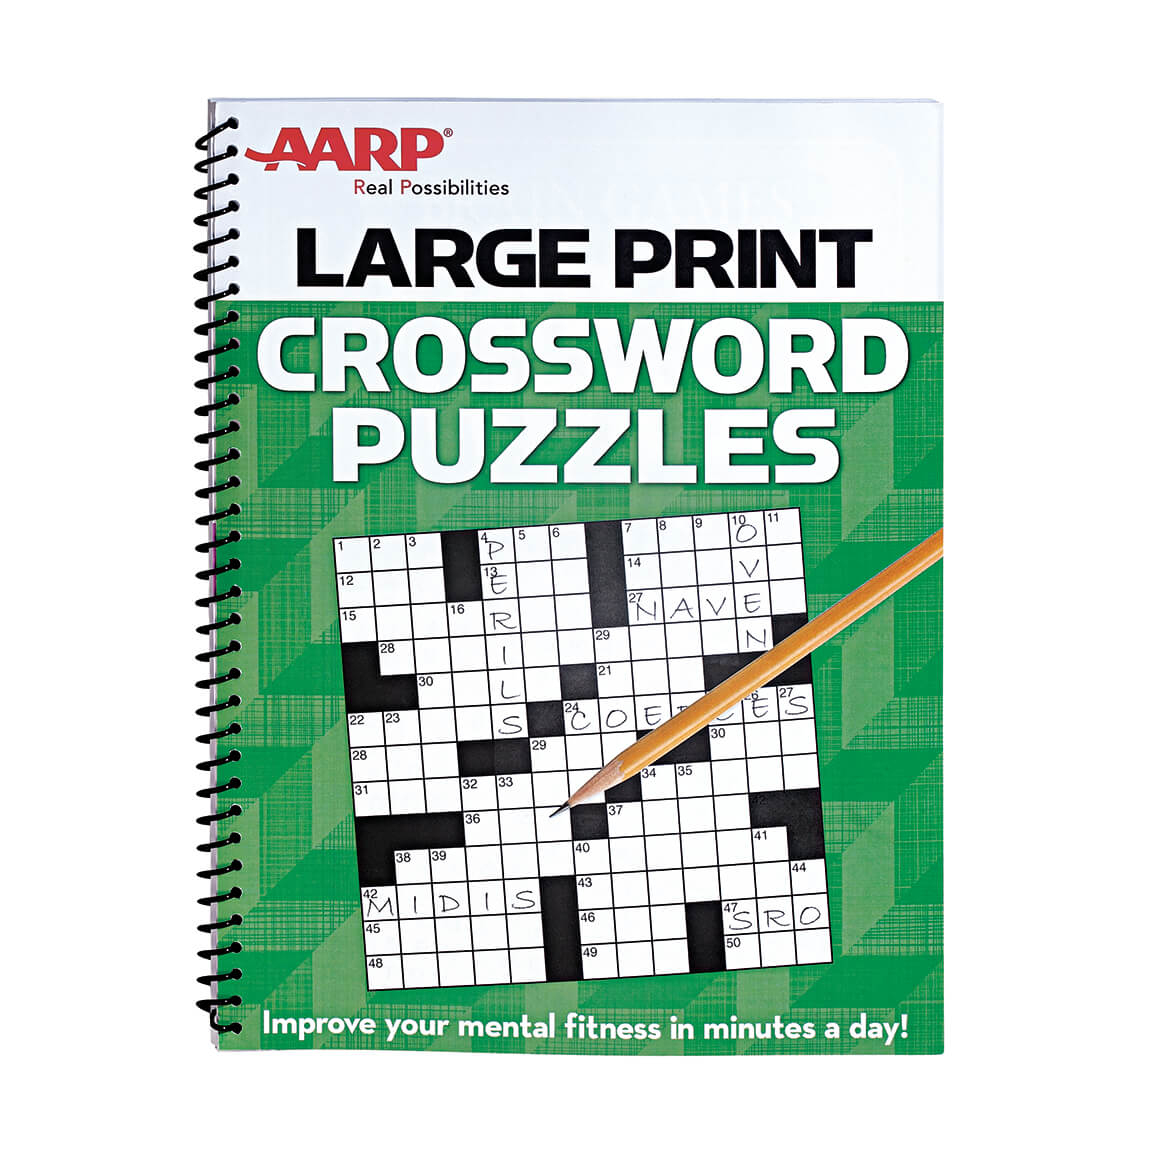 Large Print Crossword Puzzles - Crossword Puzzles - Miles Kimball - Large Print Crossword Puzzles Visually Impaired